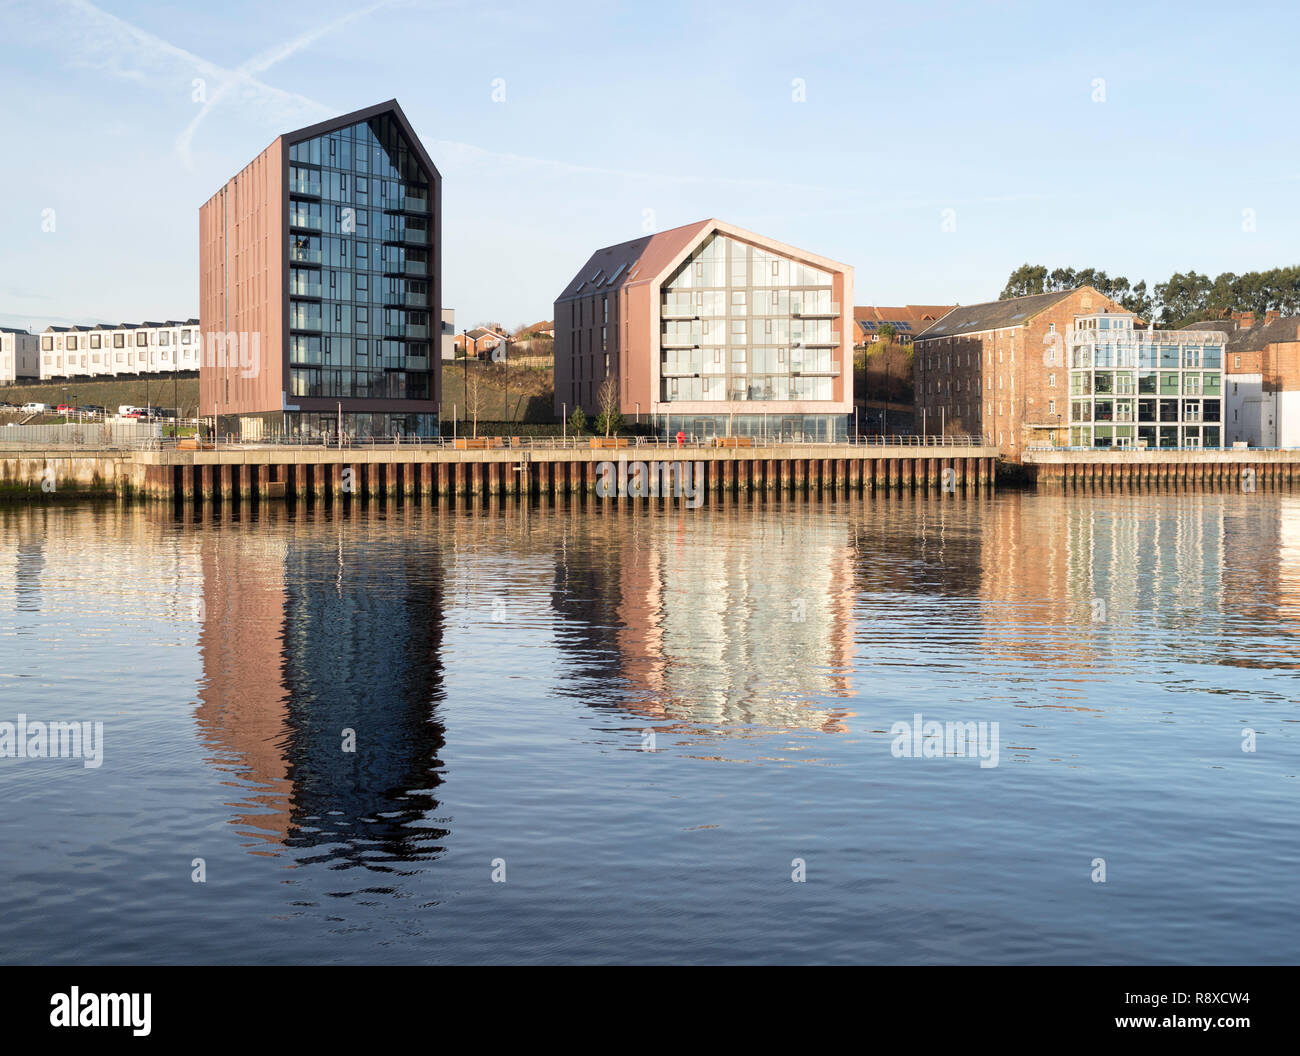 Smokehouses apartments, a residential development on the site of the old Smith's Dock in North Shields, north east England, UK Stock Photo